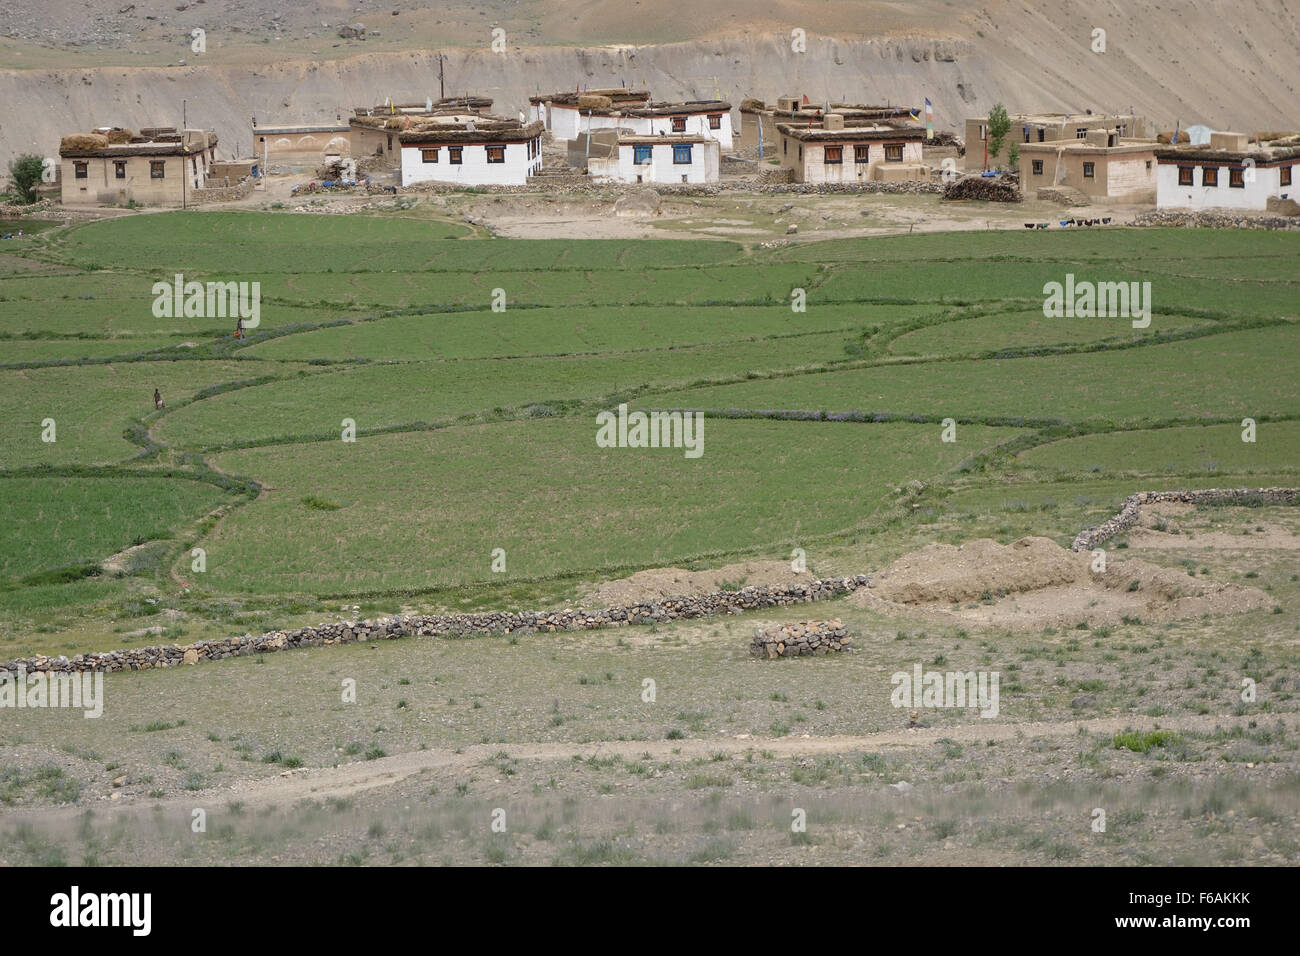 Spiti Valley, Himachal Pradesh, Northern India - homes and fields with copyspace - Stock Image